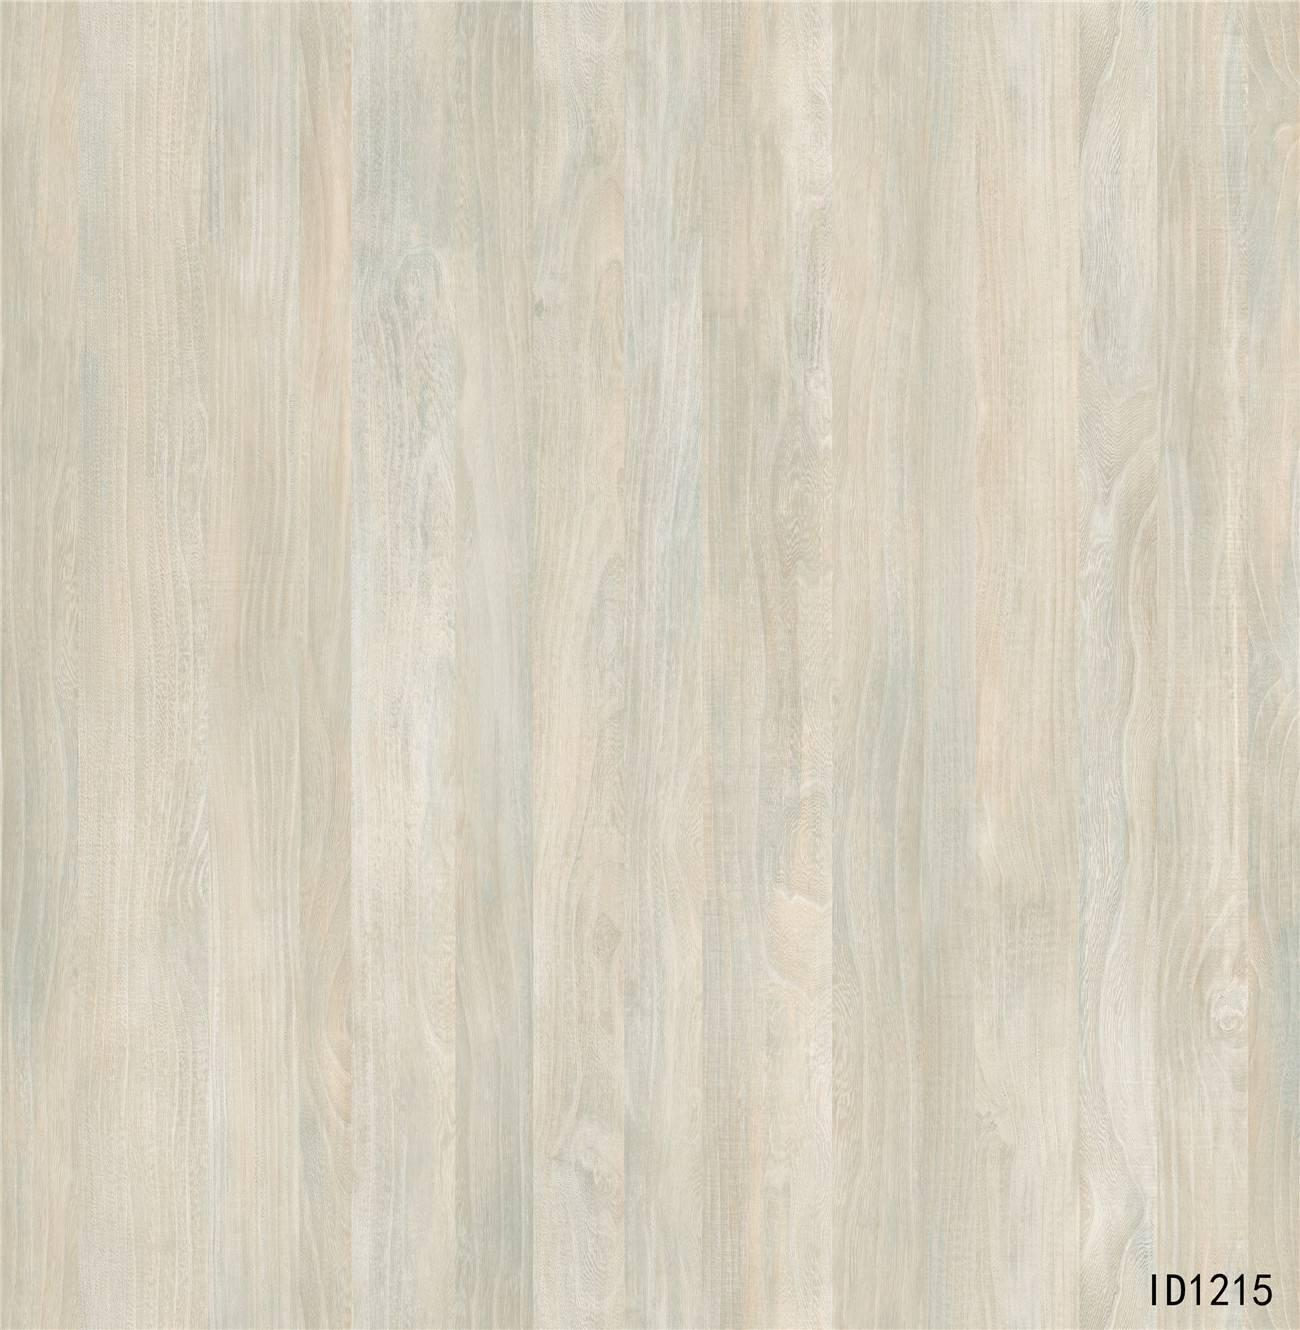 ID1215 Elm decor paper for melamine 4ft